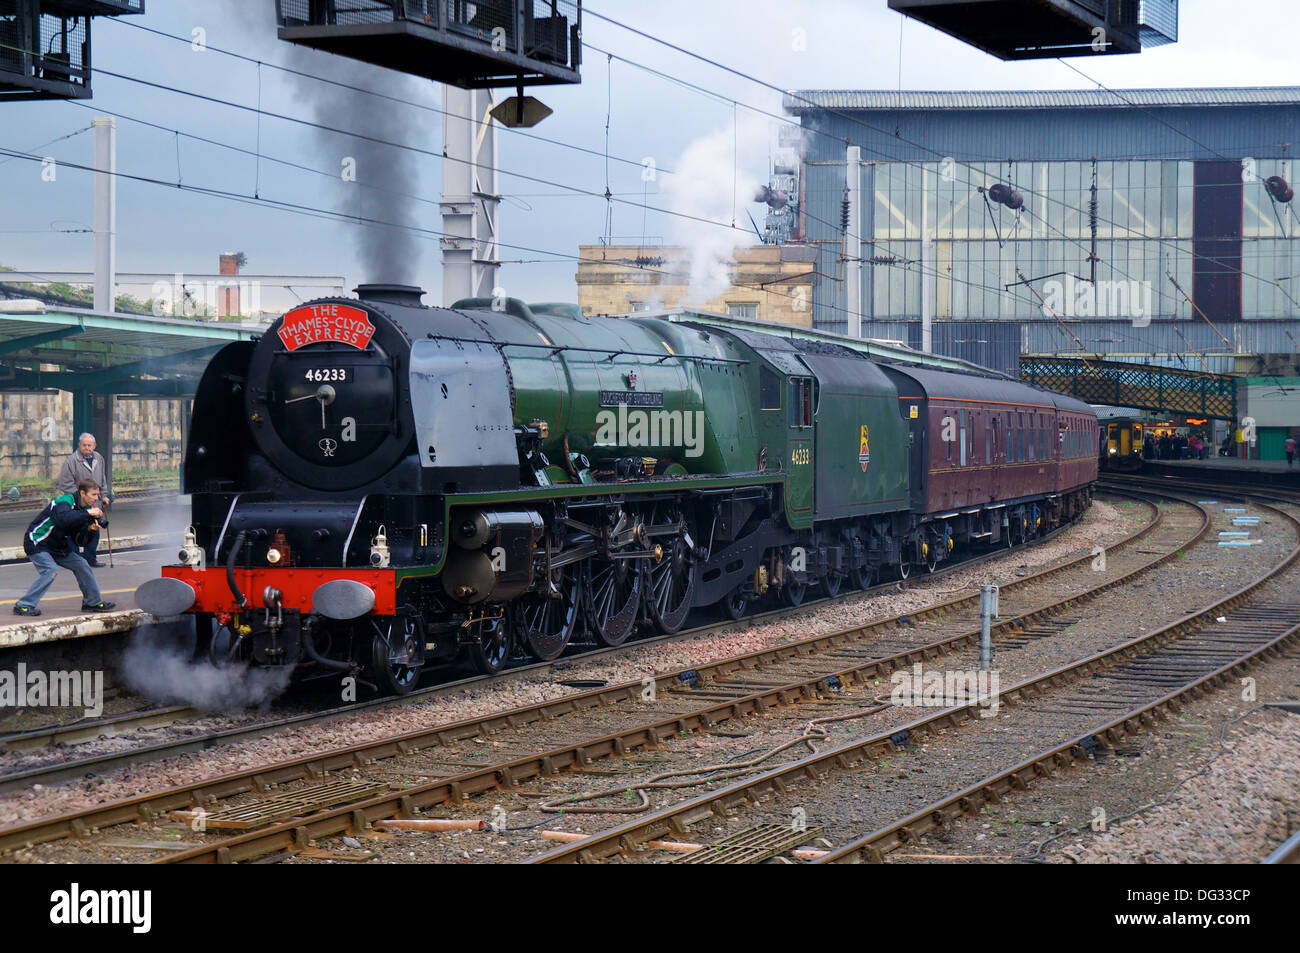 Steam locomotive 'Duchess of Sutherland' 46233 in Carlisle Railway Station with a special charter train. Carlisle Cumbria - Stock Image